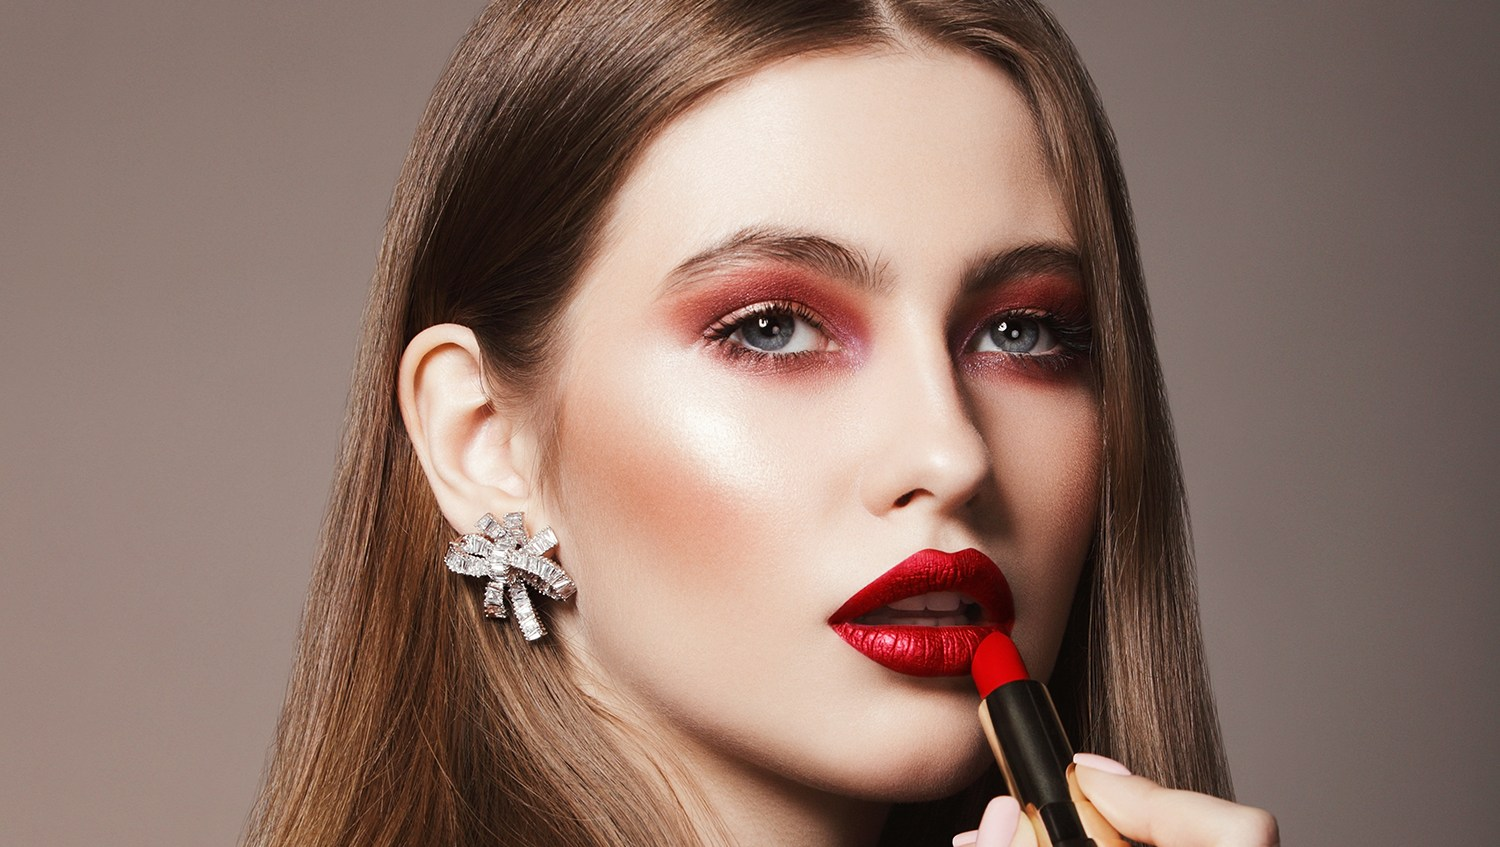 10 Long-Wearing Beauty Products to Up Your Date Night Confidence